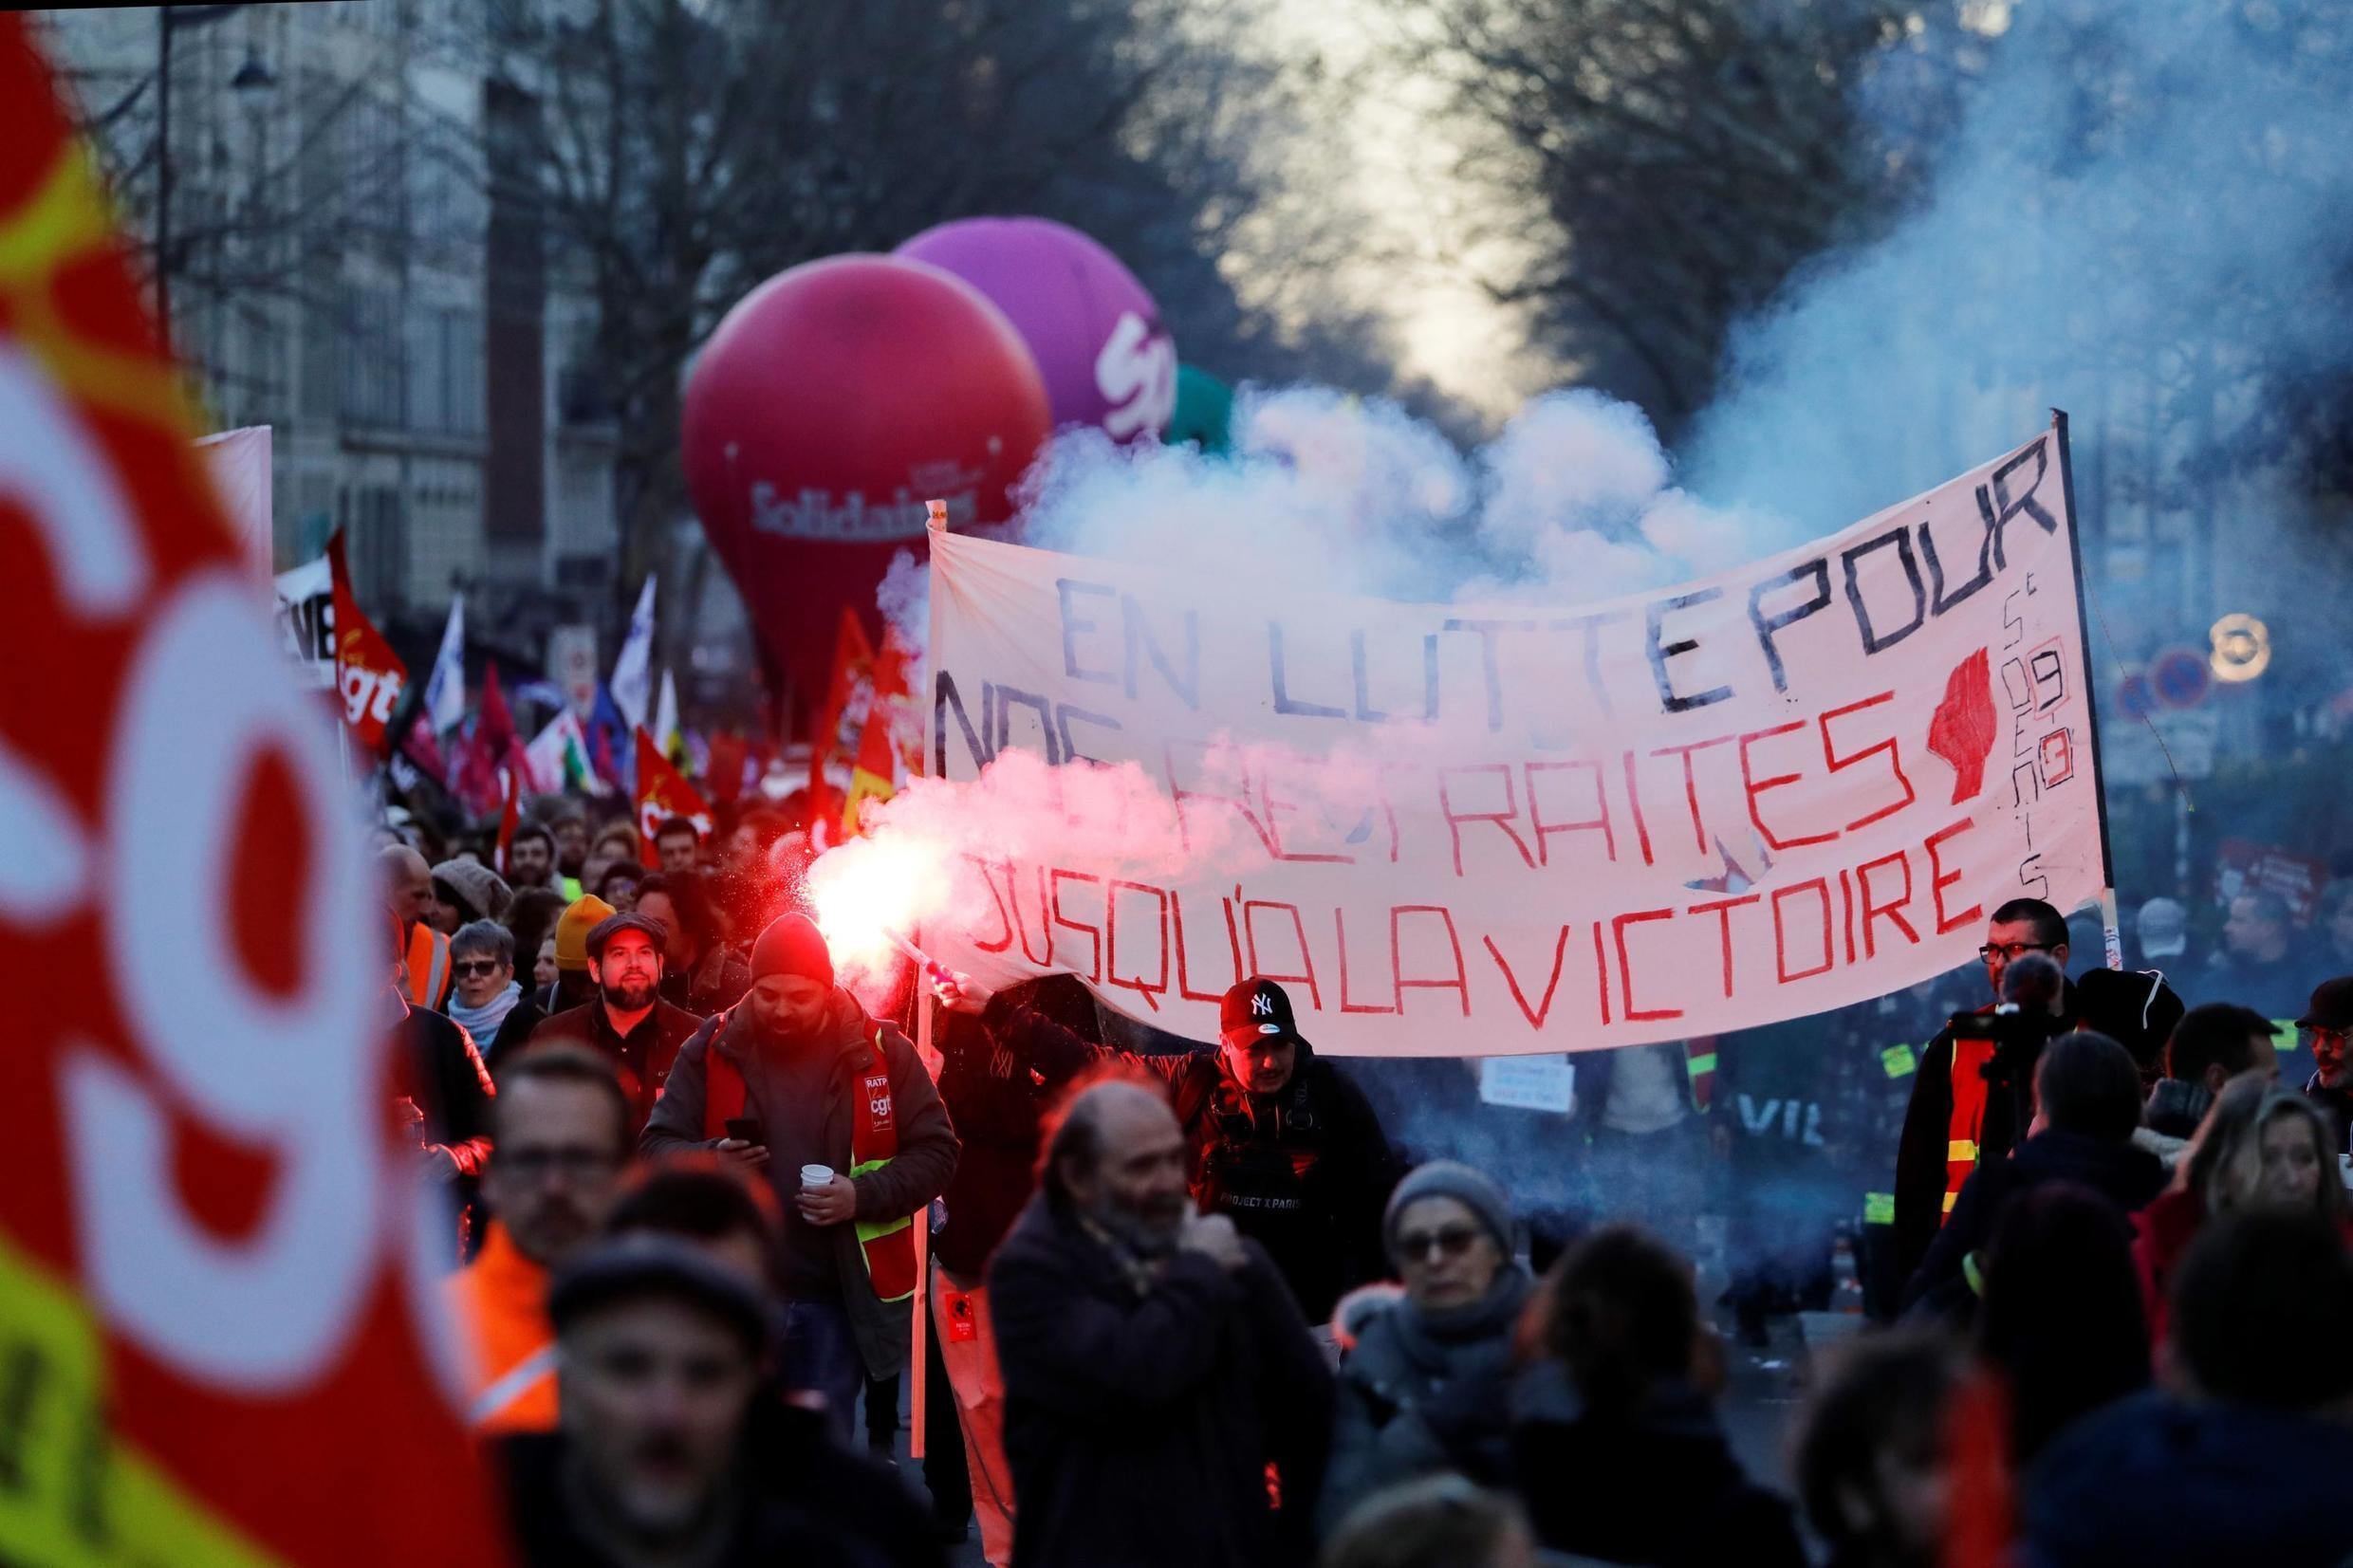 """Protesters hold a banner reading """"Fight for our retirements until victory"""" during a demonstration against the French government's plan to overhaul the country's retirement system in Paris, on February 6, 2020."""